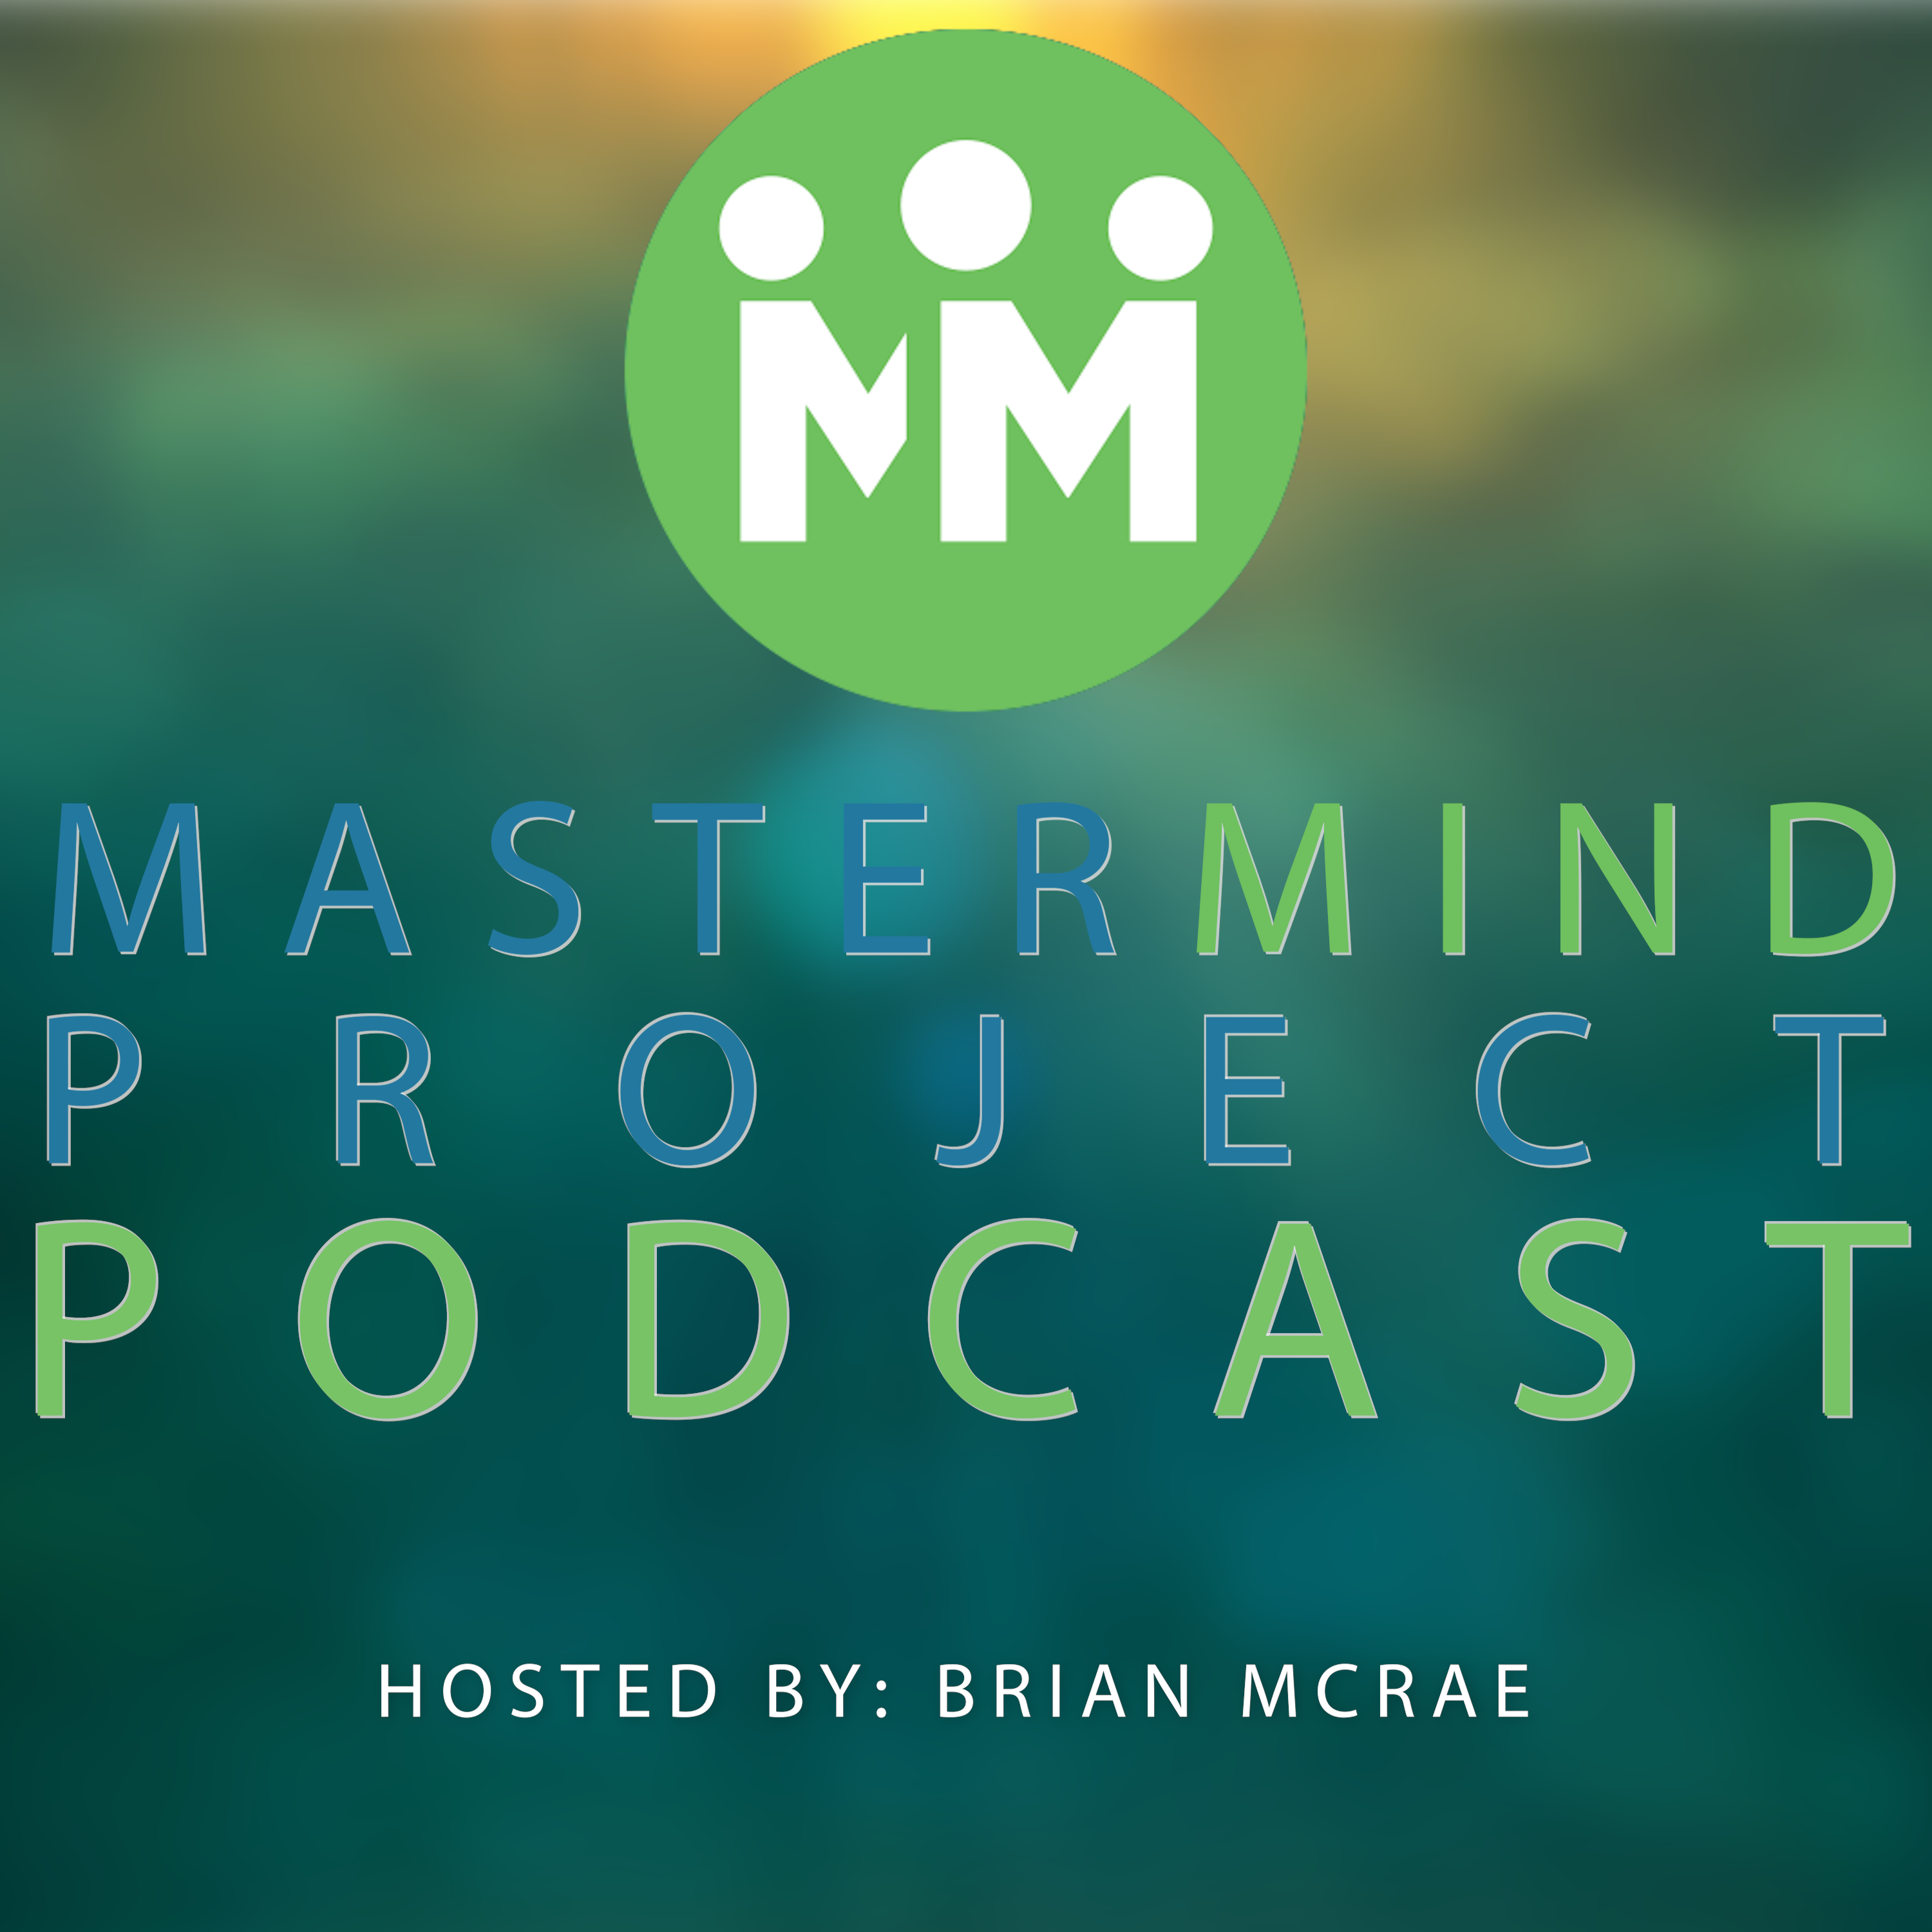 Artwork for podcast The Mastermind Project